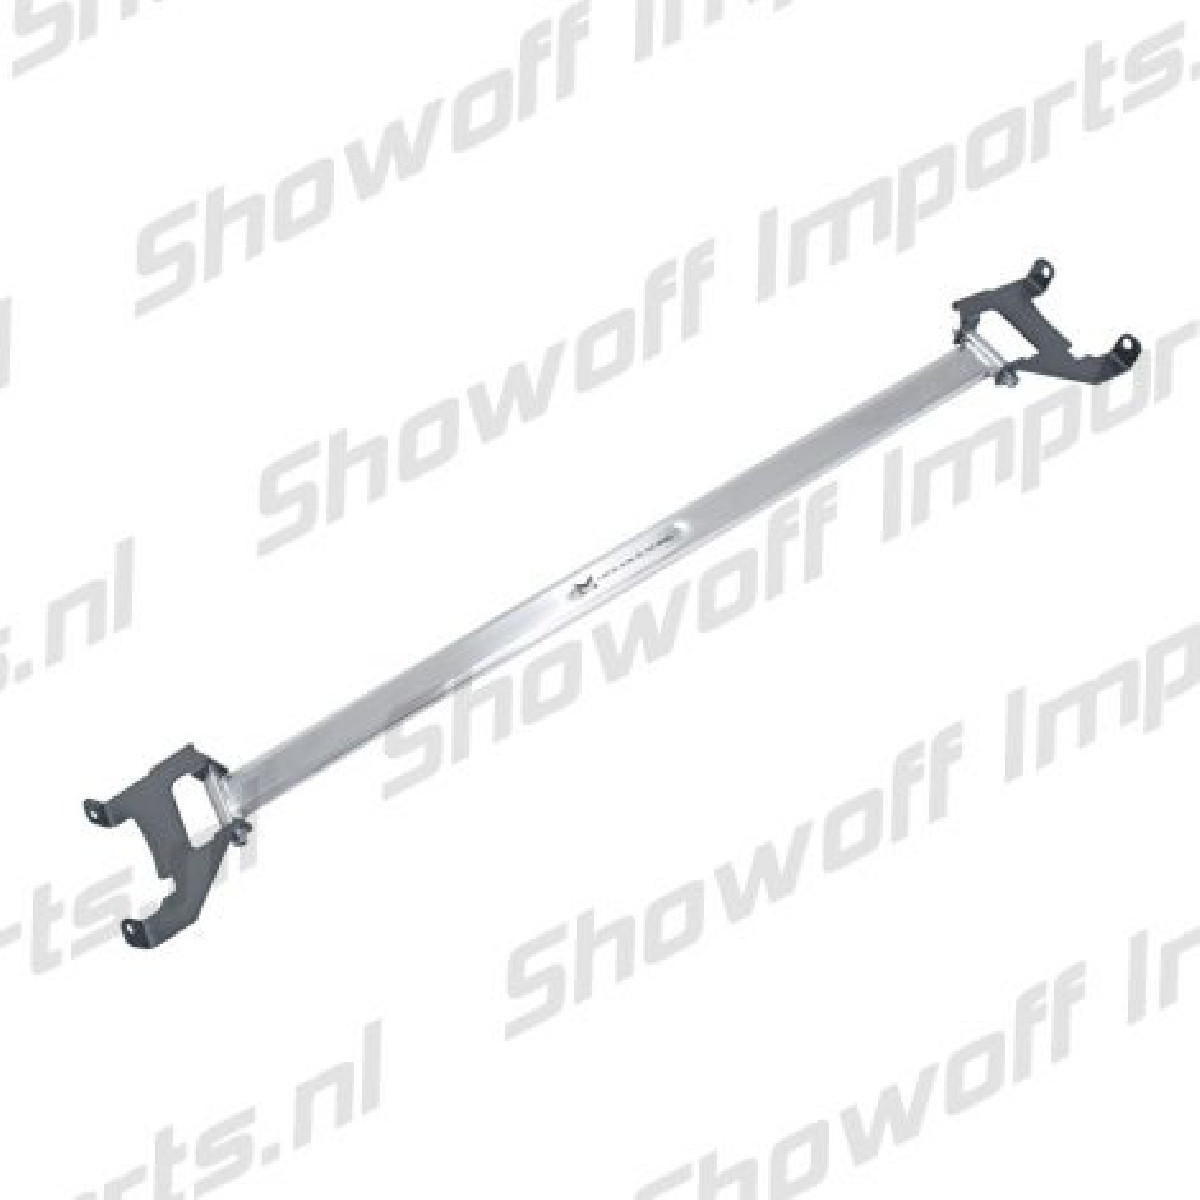 Subaru BRZ Race Spec Rear Upper Strutbar [MR]